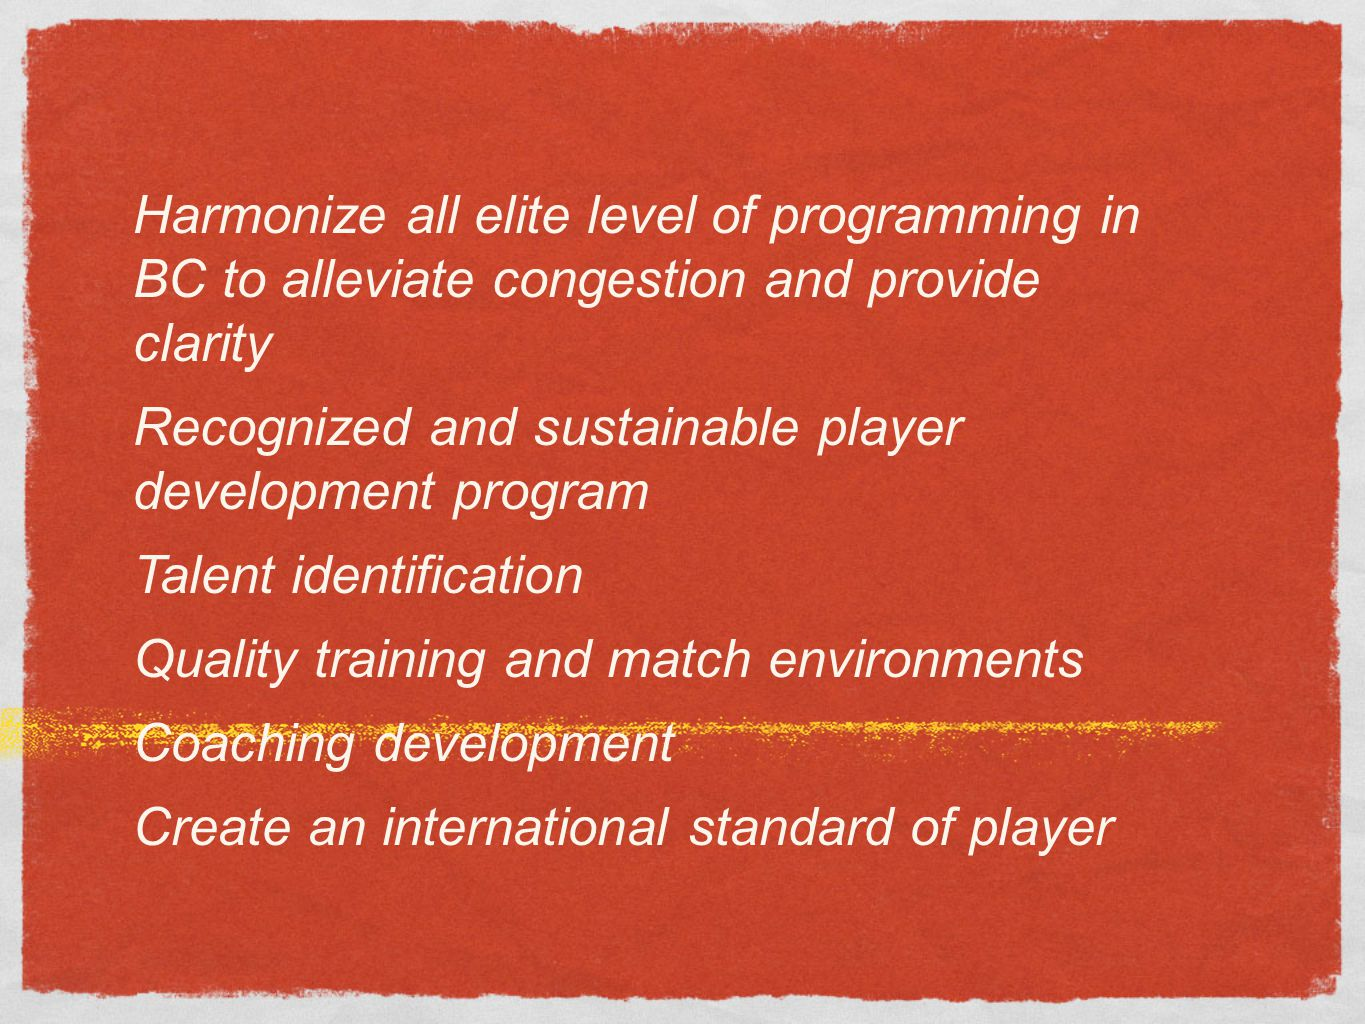 Harmonize all elite level of programming in BC to alleviate congestion and provide clarity